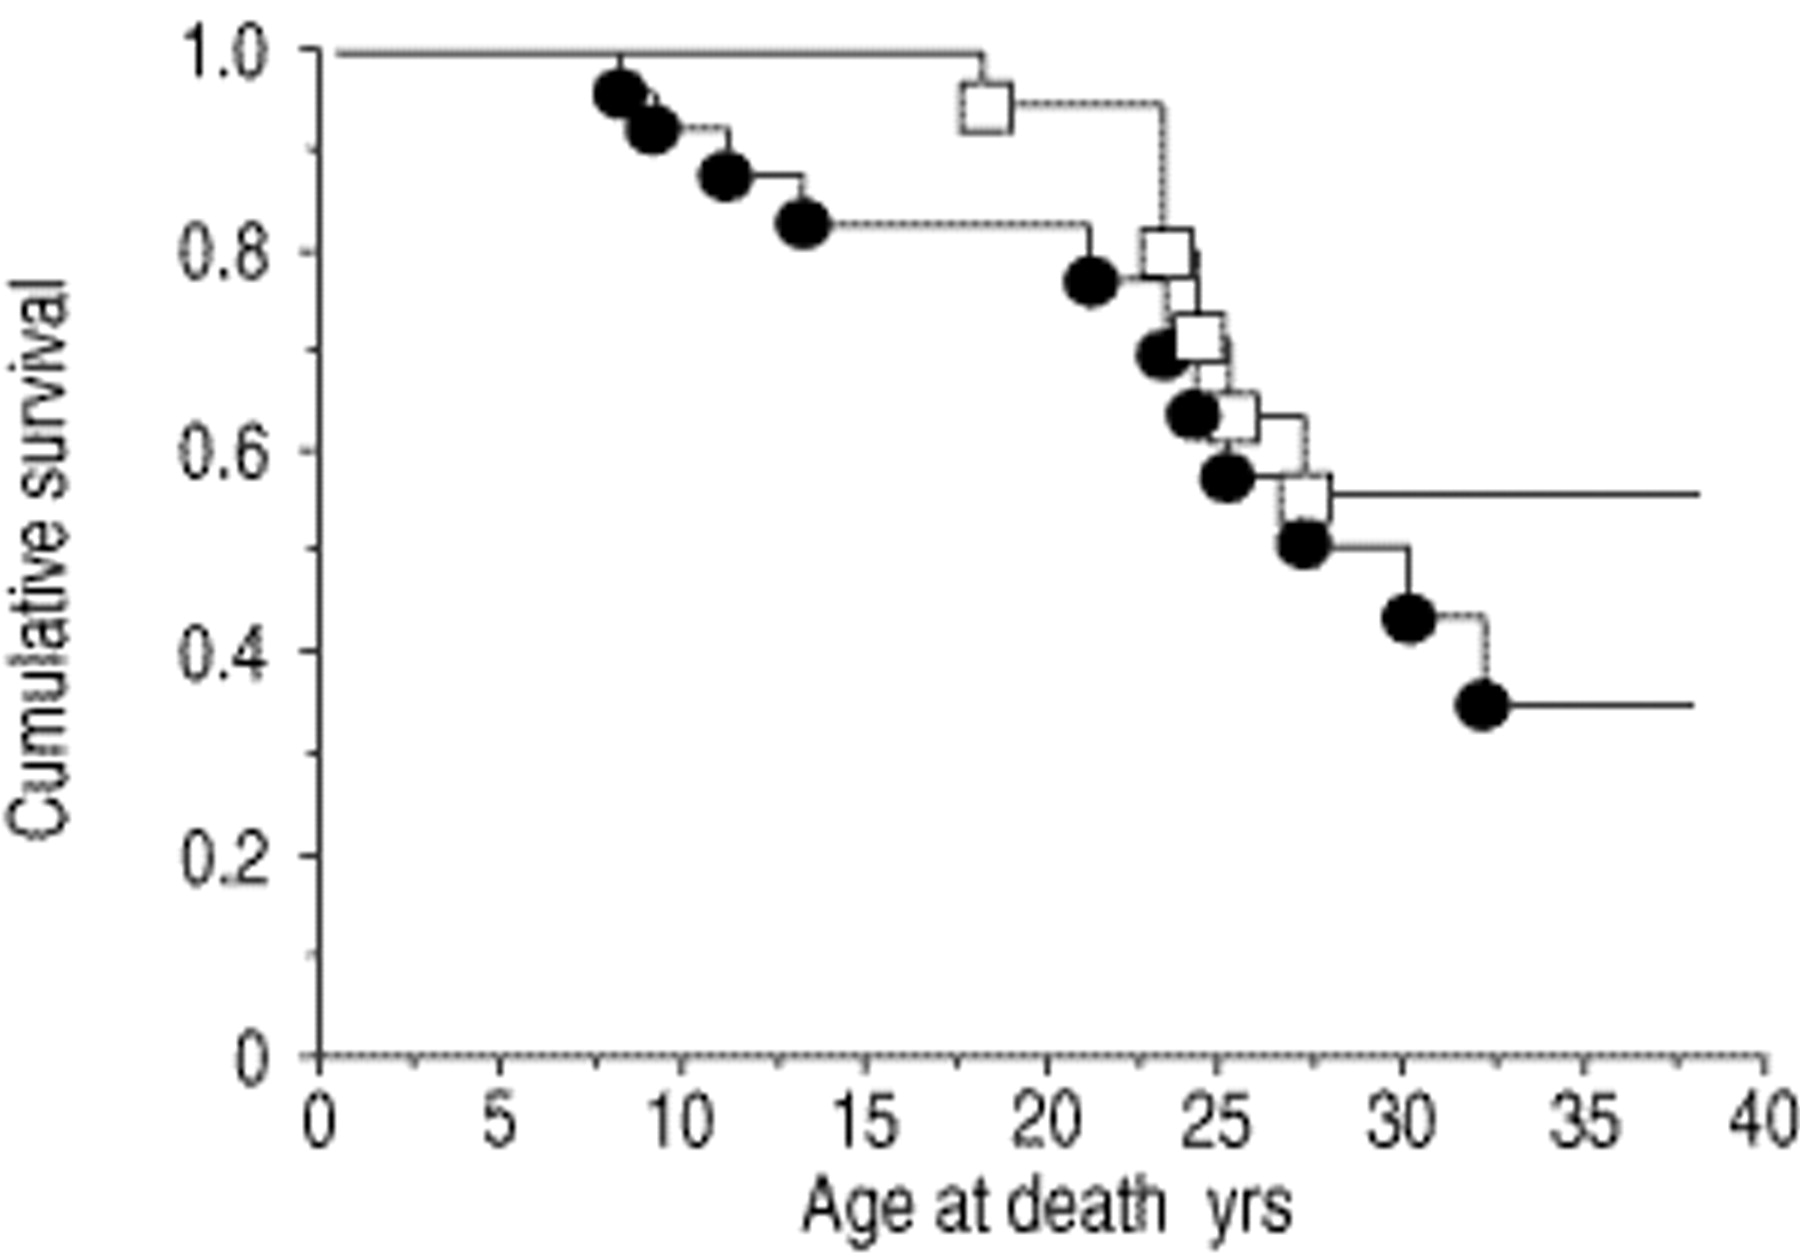 High morbidity and mortality in cystic fibrosis patients